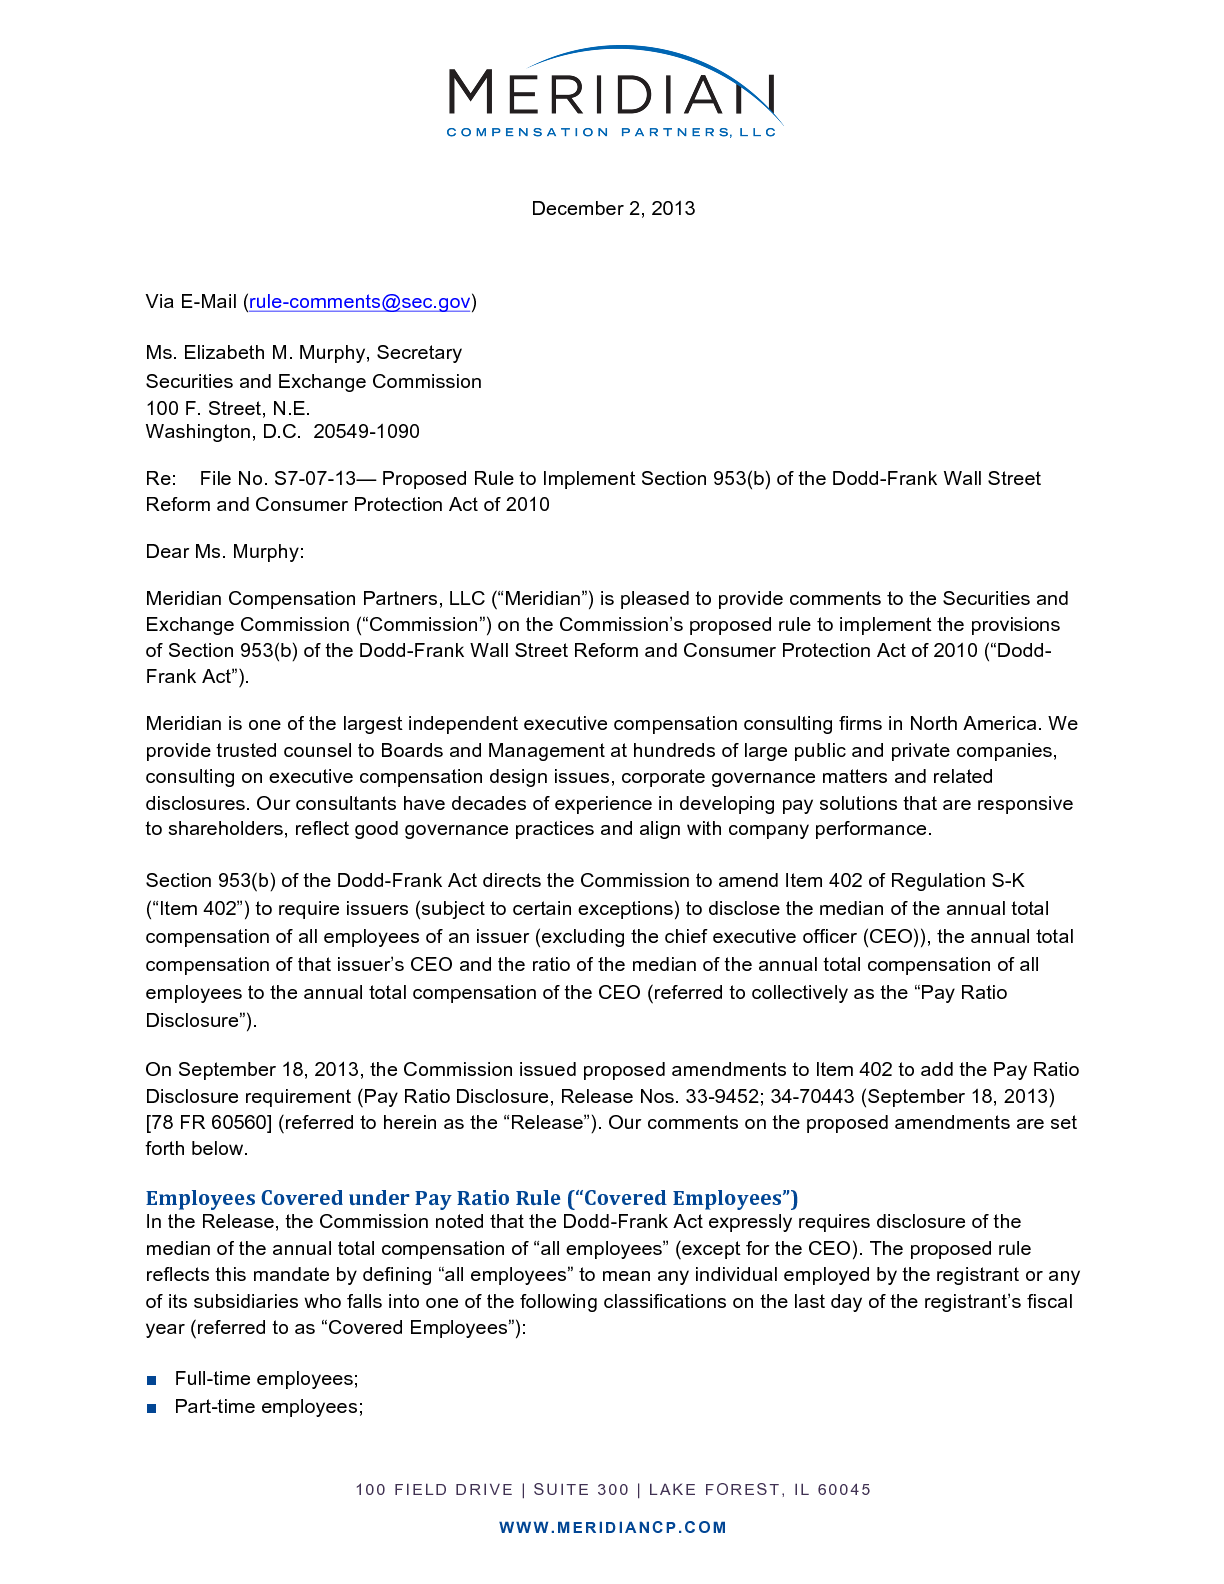 SEC Comment Letter on Proposed CEO Pay Ratio Disclosure Rule